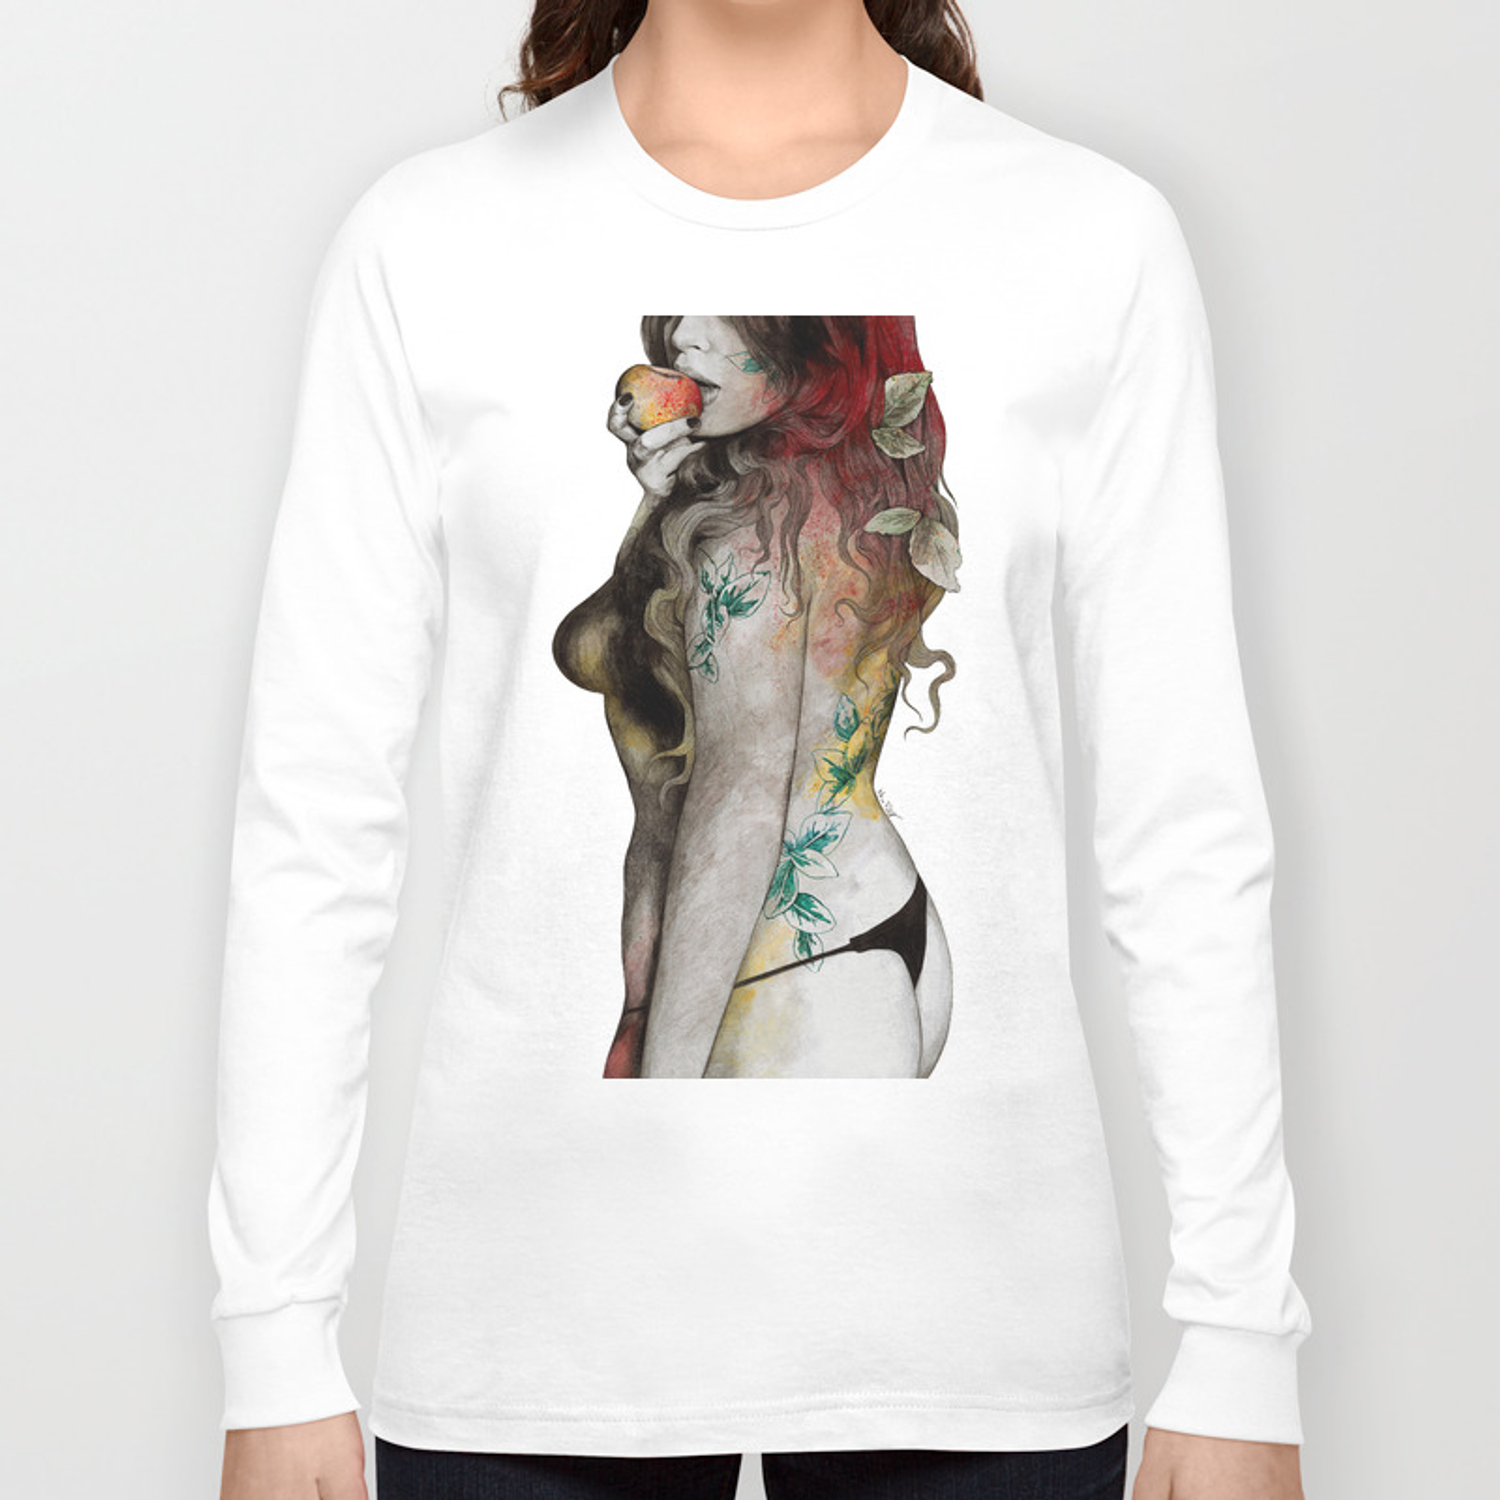 ada510d8 Koi No Yokan Long Sleeve T-shirt by kissmyart1981 | Society6